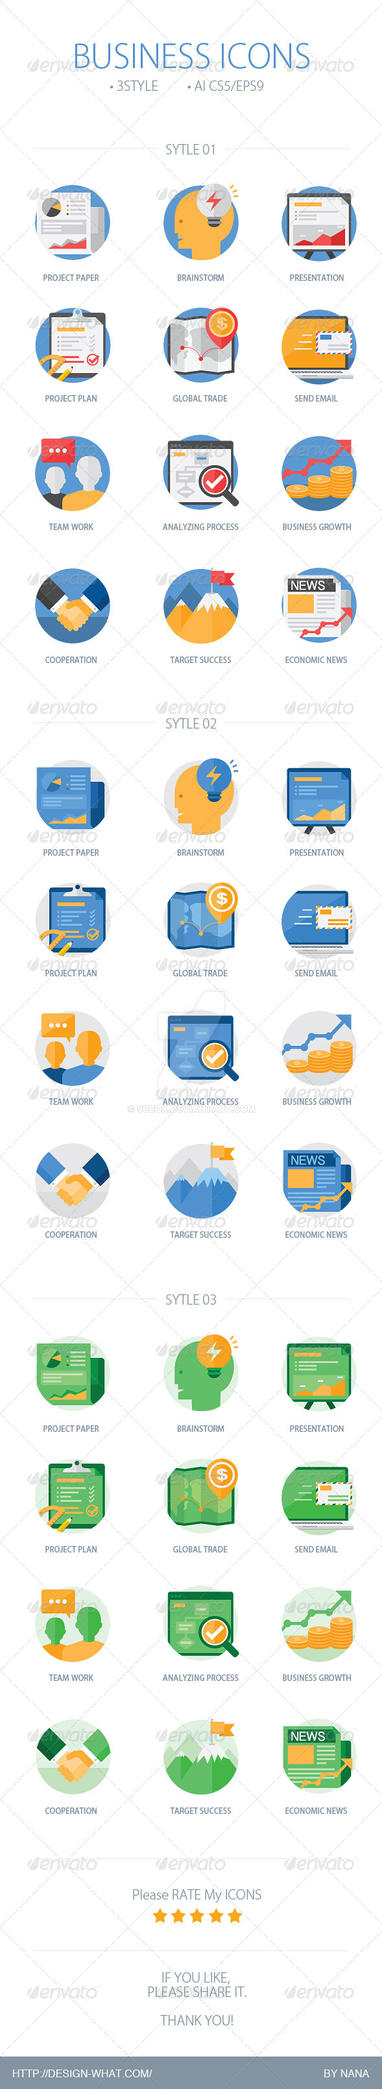 Business Icons by 90Box